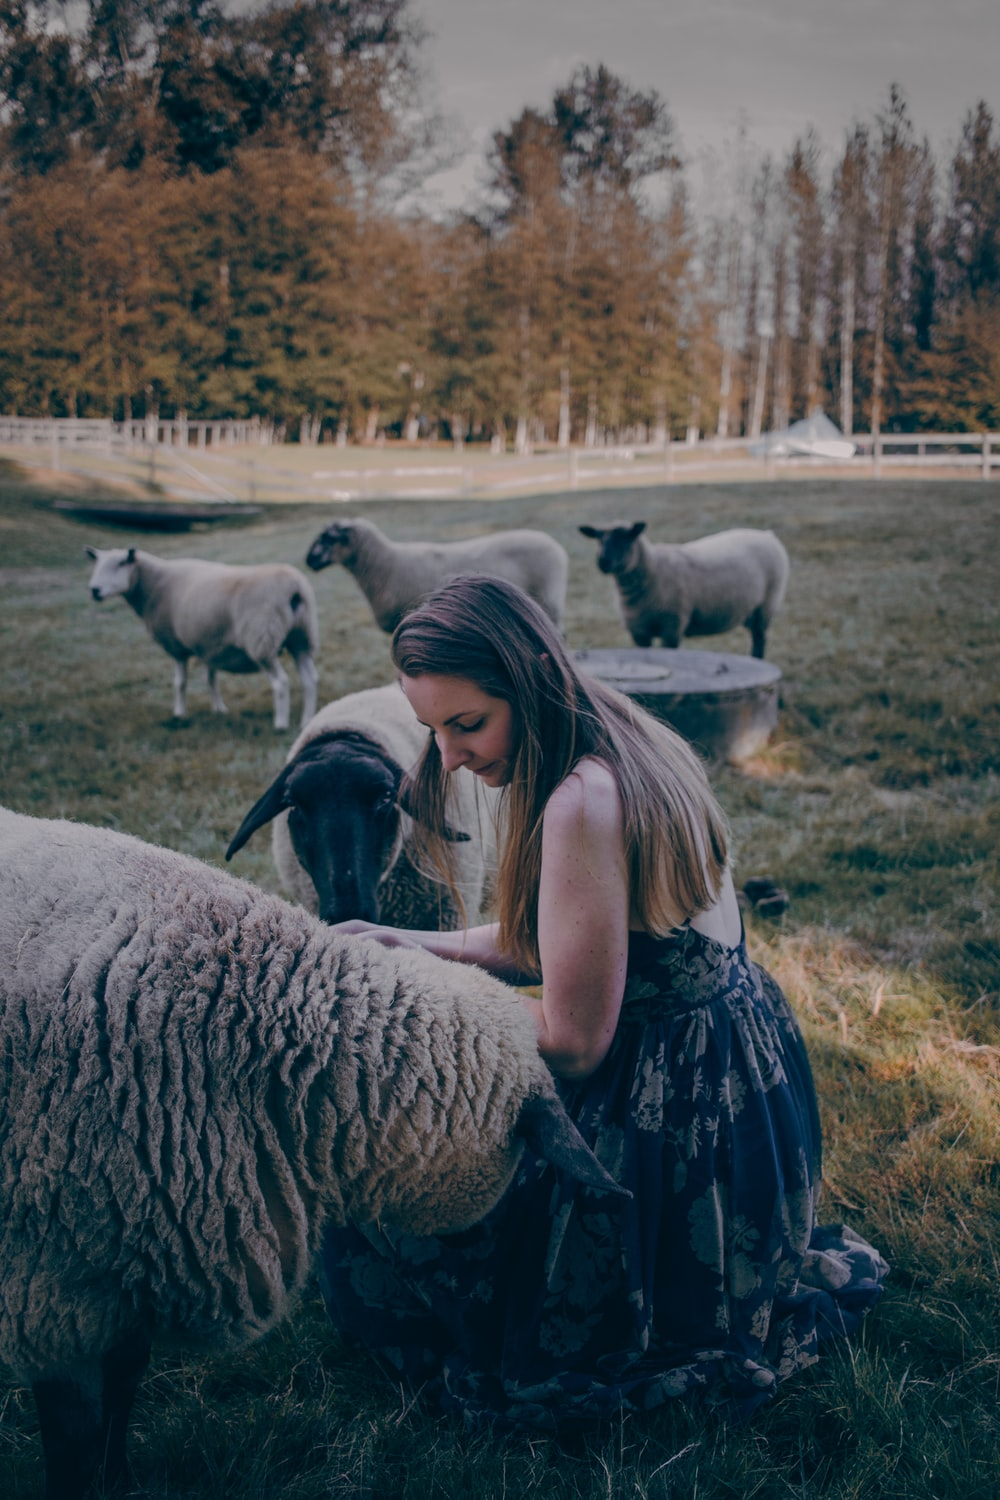 woman sitting while touching sheep on green field near trees during daytime